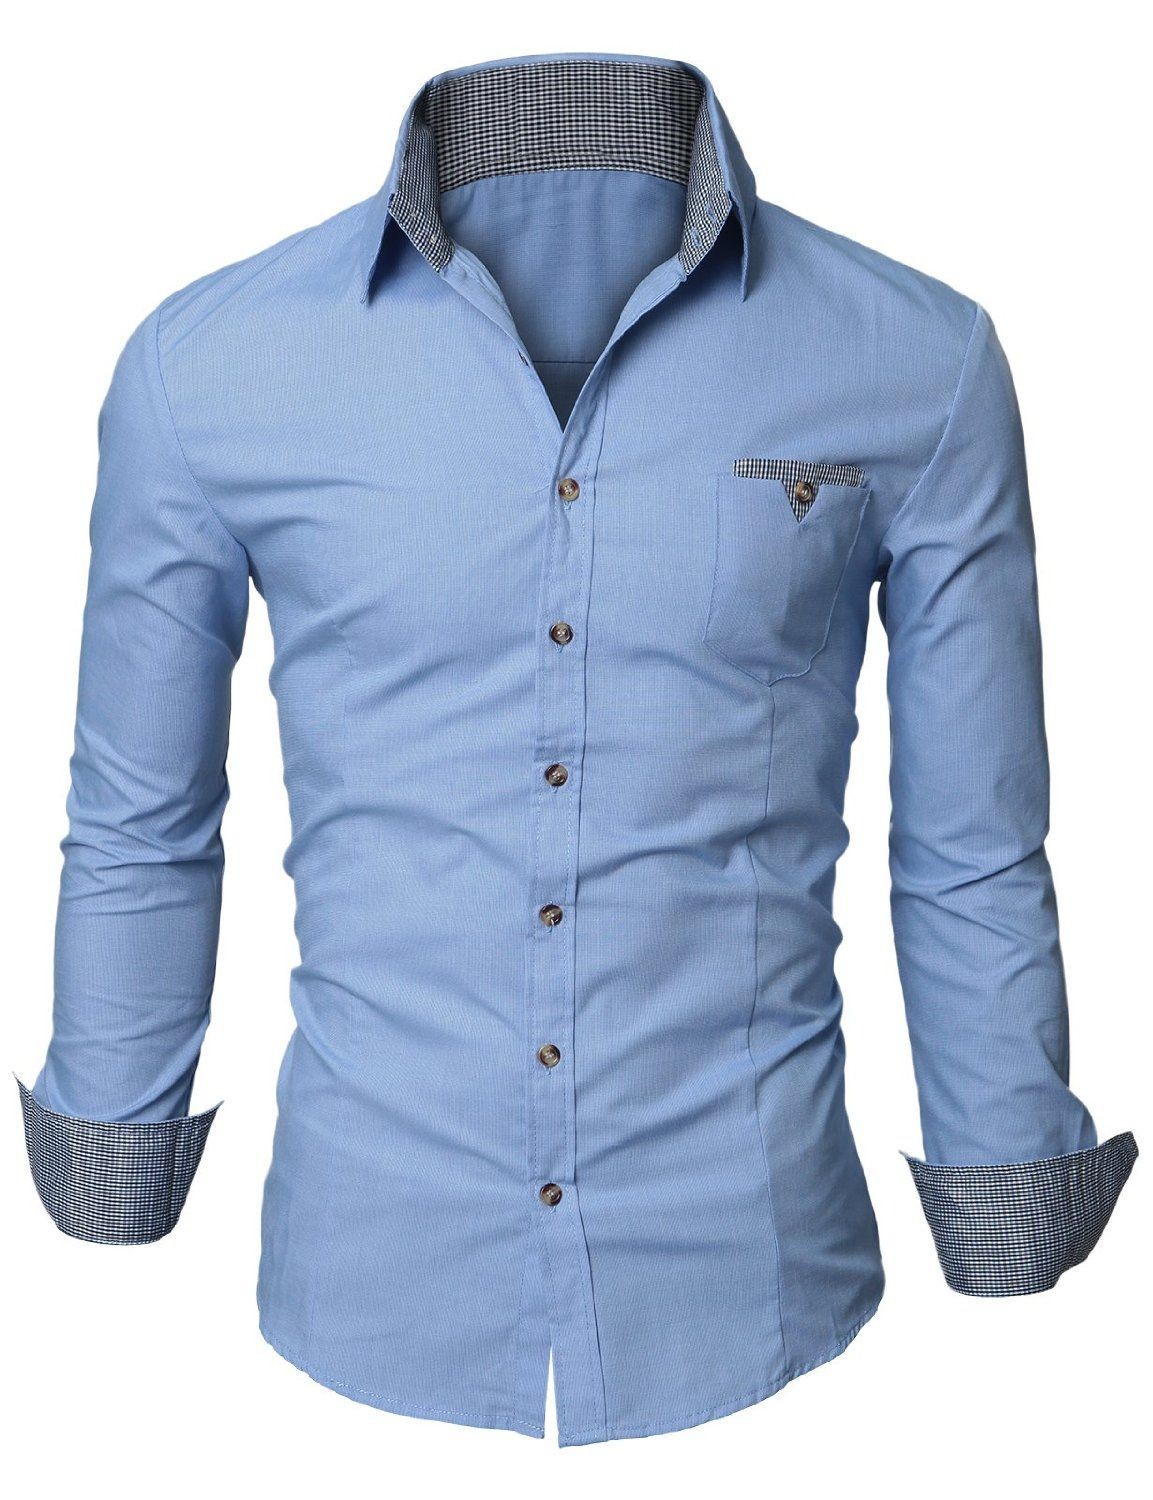 Doublju Mens Dress Shirt With Contrast Neck Band My Style Shirts